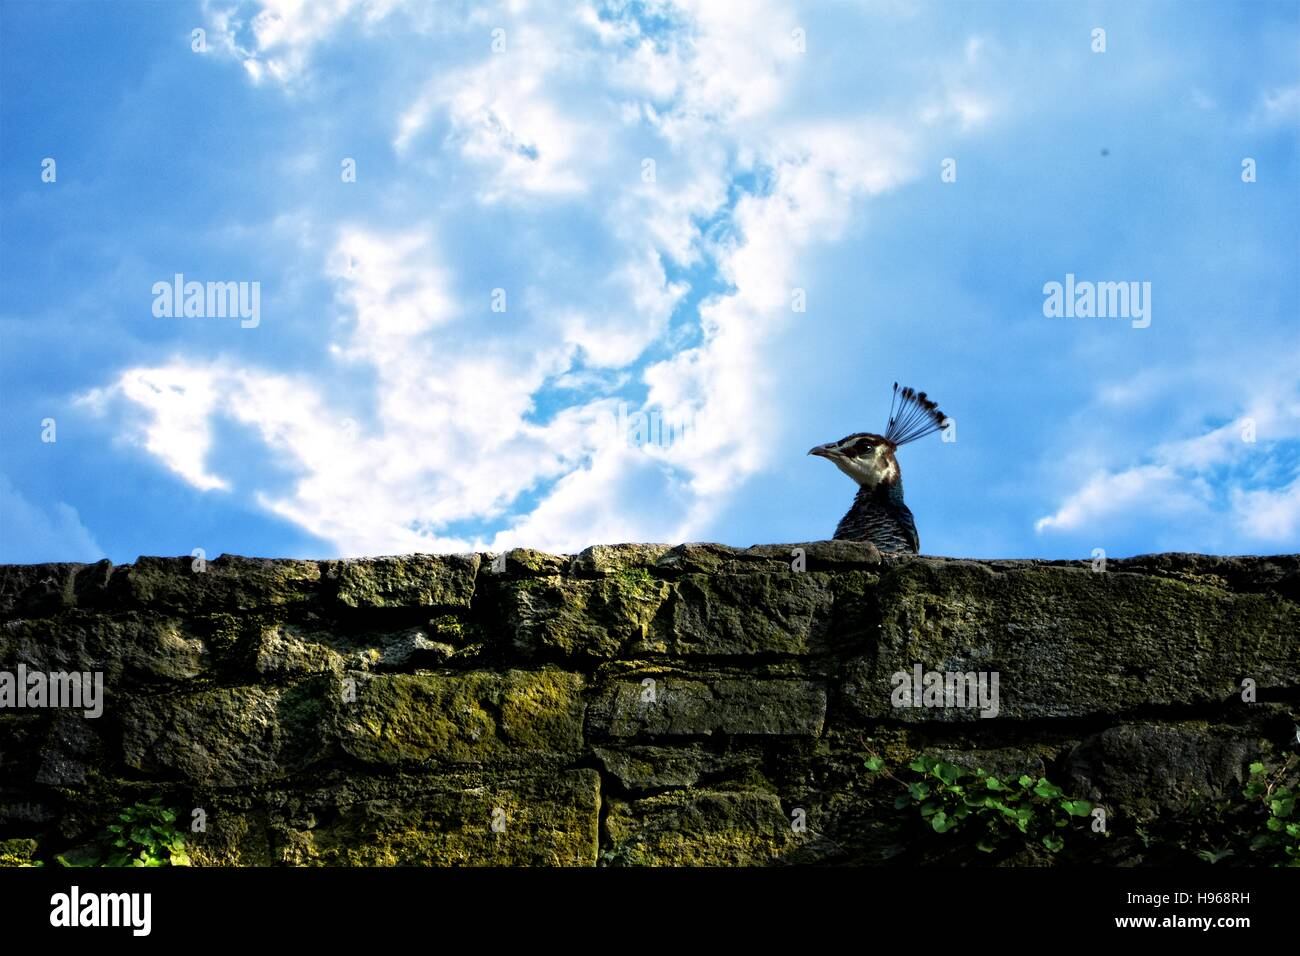 Head of a peacock looks above old stone wall, with blue sky - Stock Image